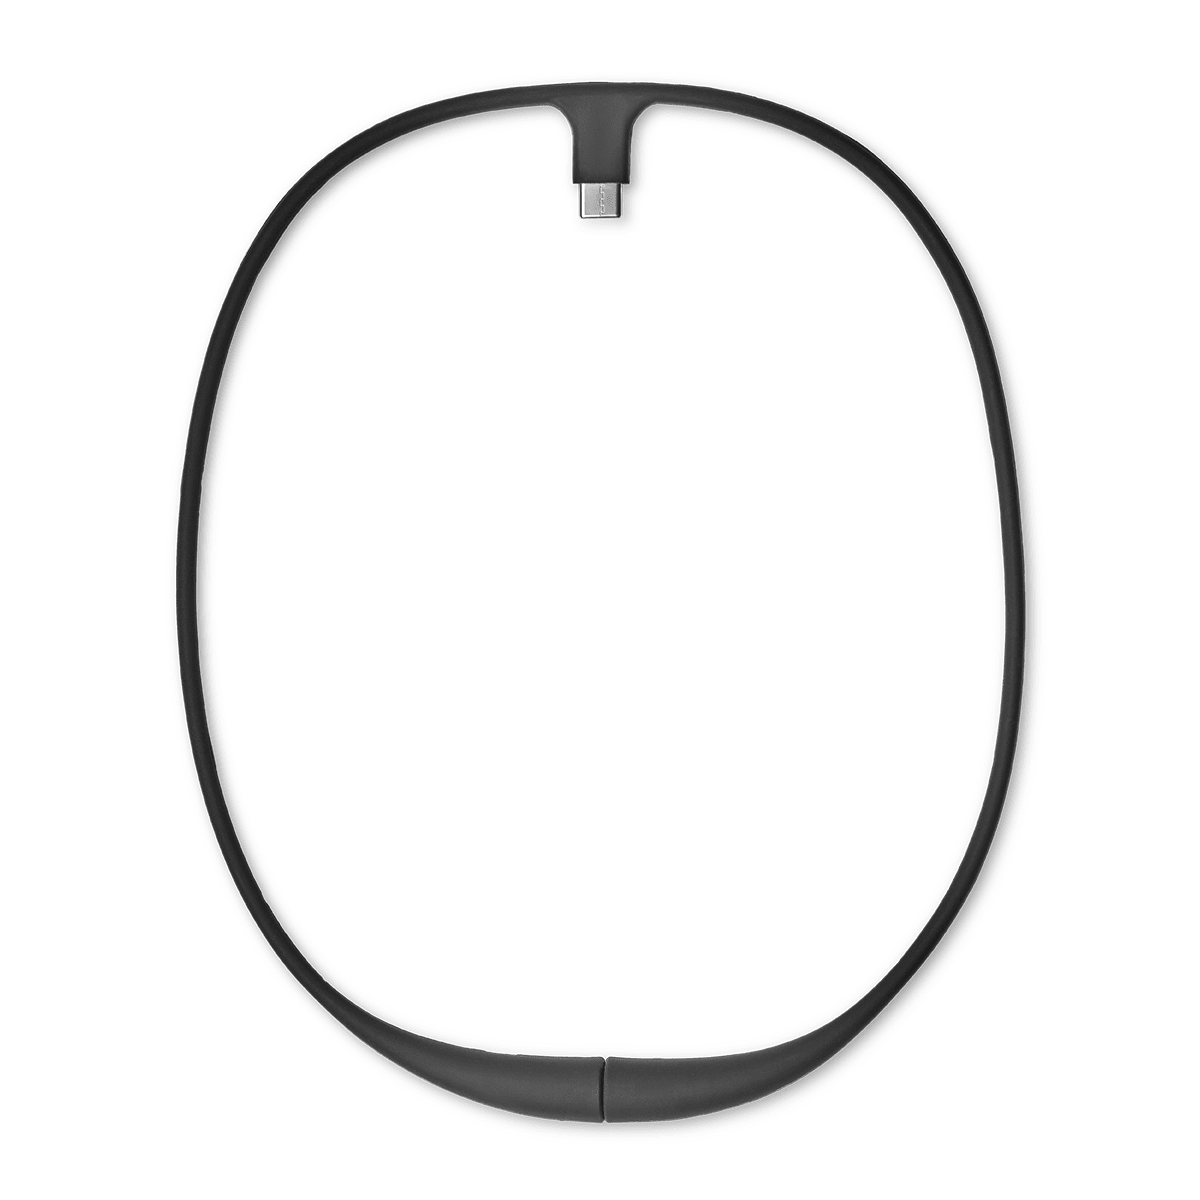 UPRIGHT NECKLACE – A New Way To Wear Your GO Device